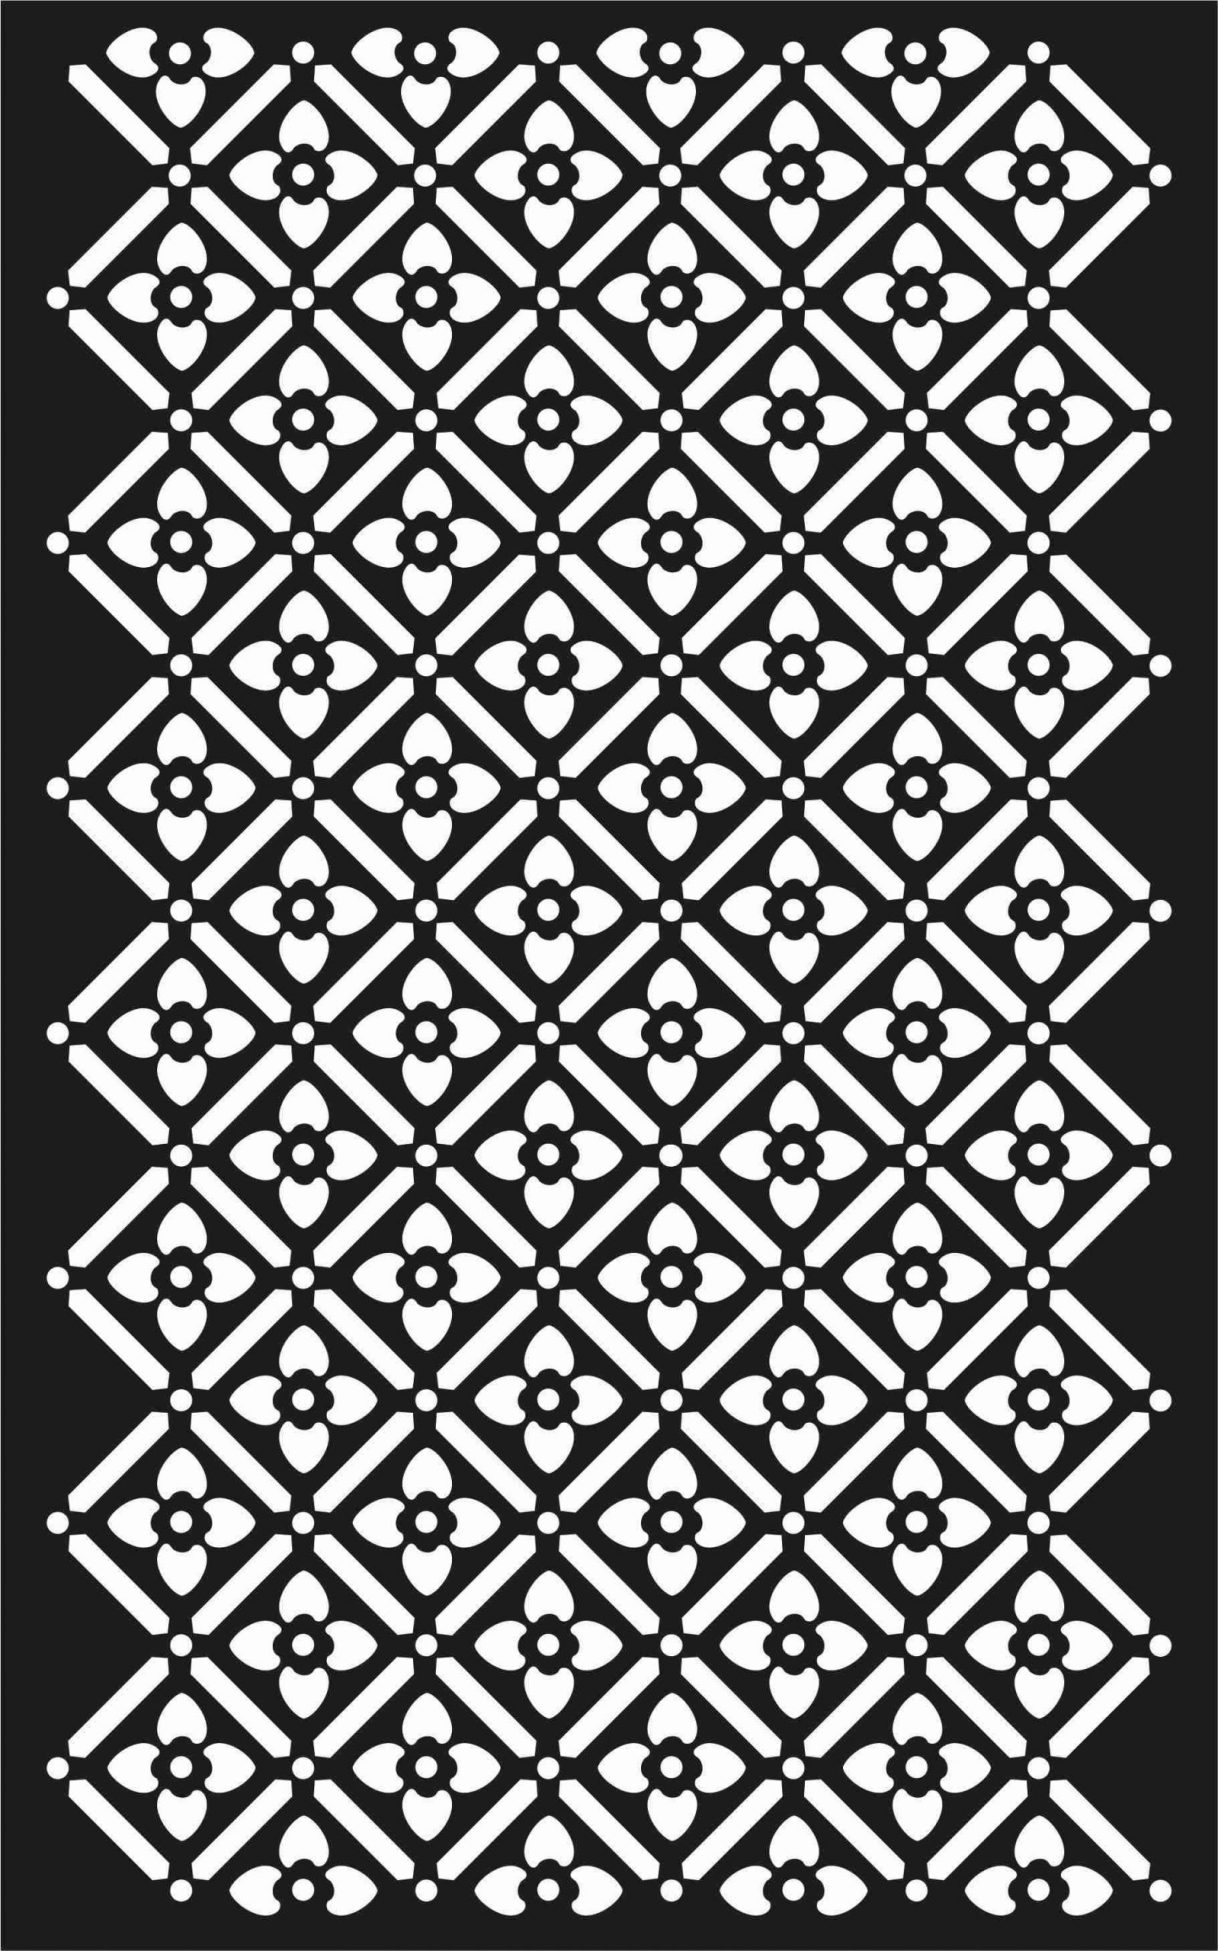 Floral Screen Patterns Design 64 Free DXF File